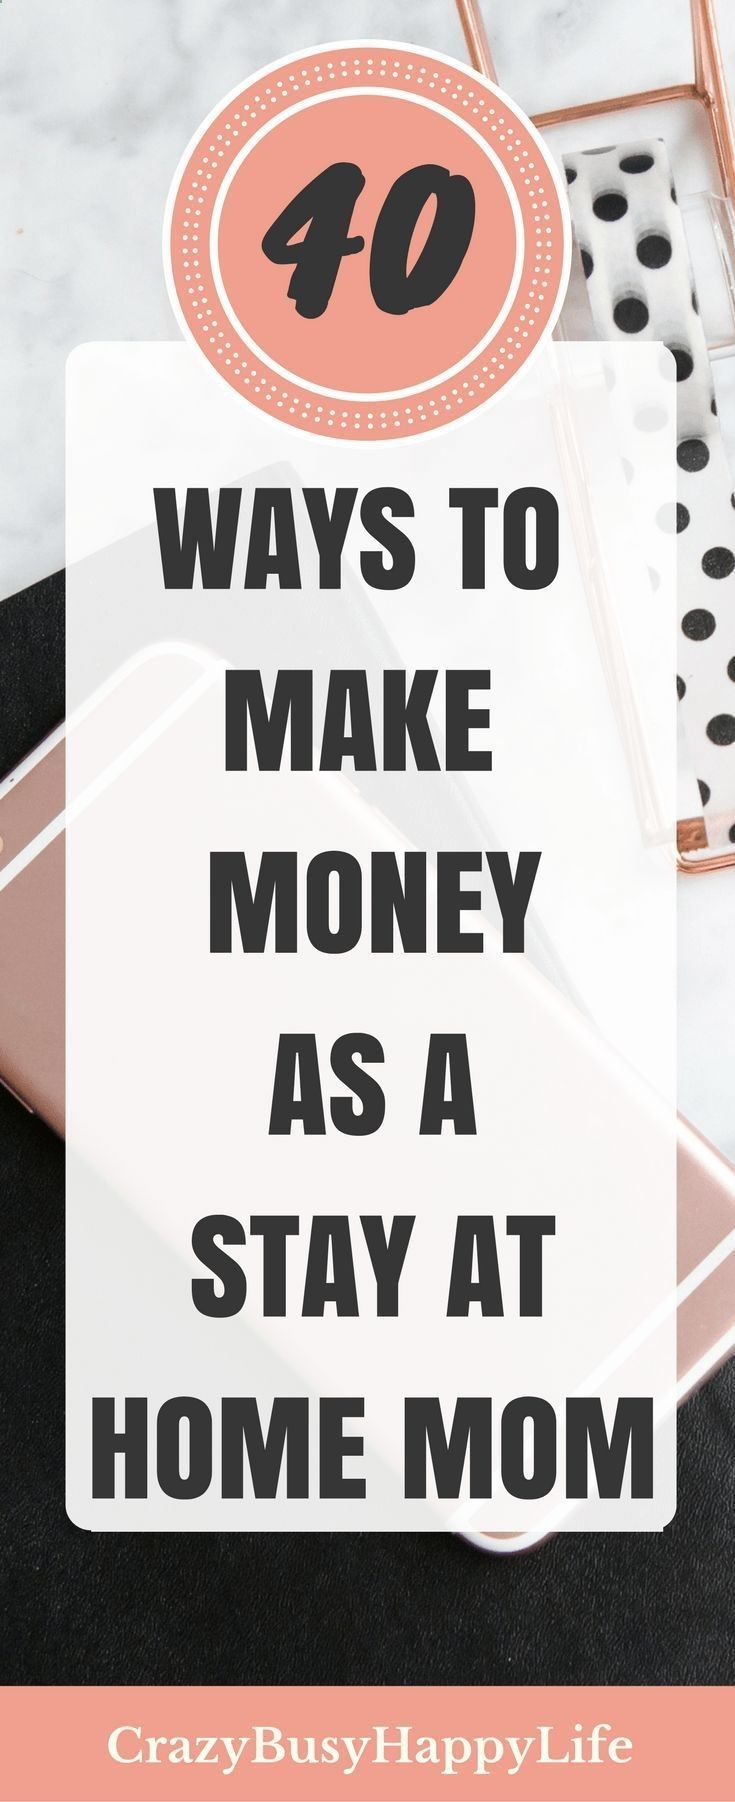 Making Money at Home Writing Online - Here are 40 great ideas for ...